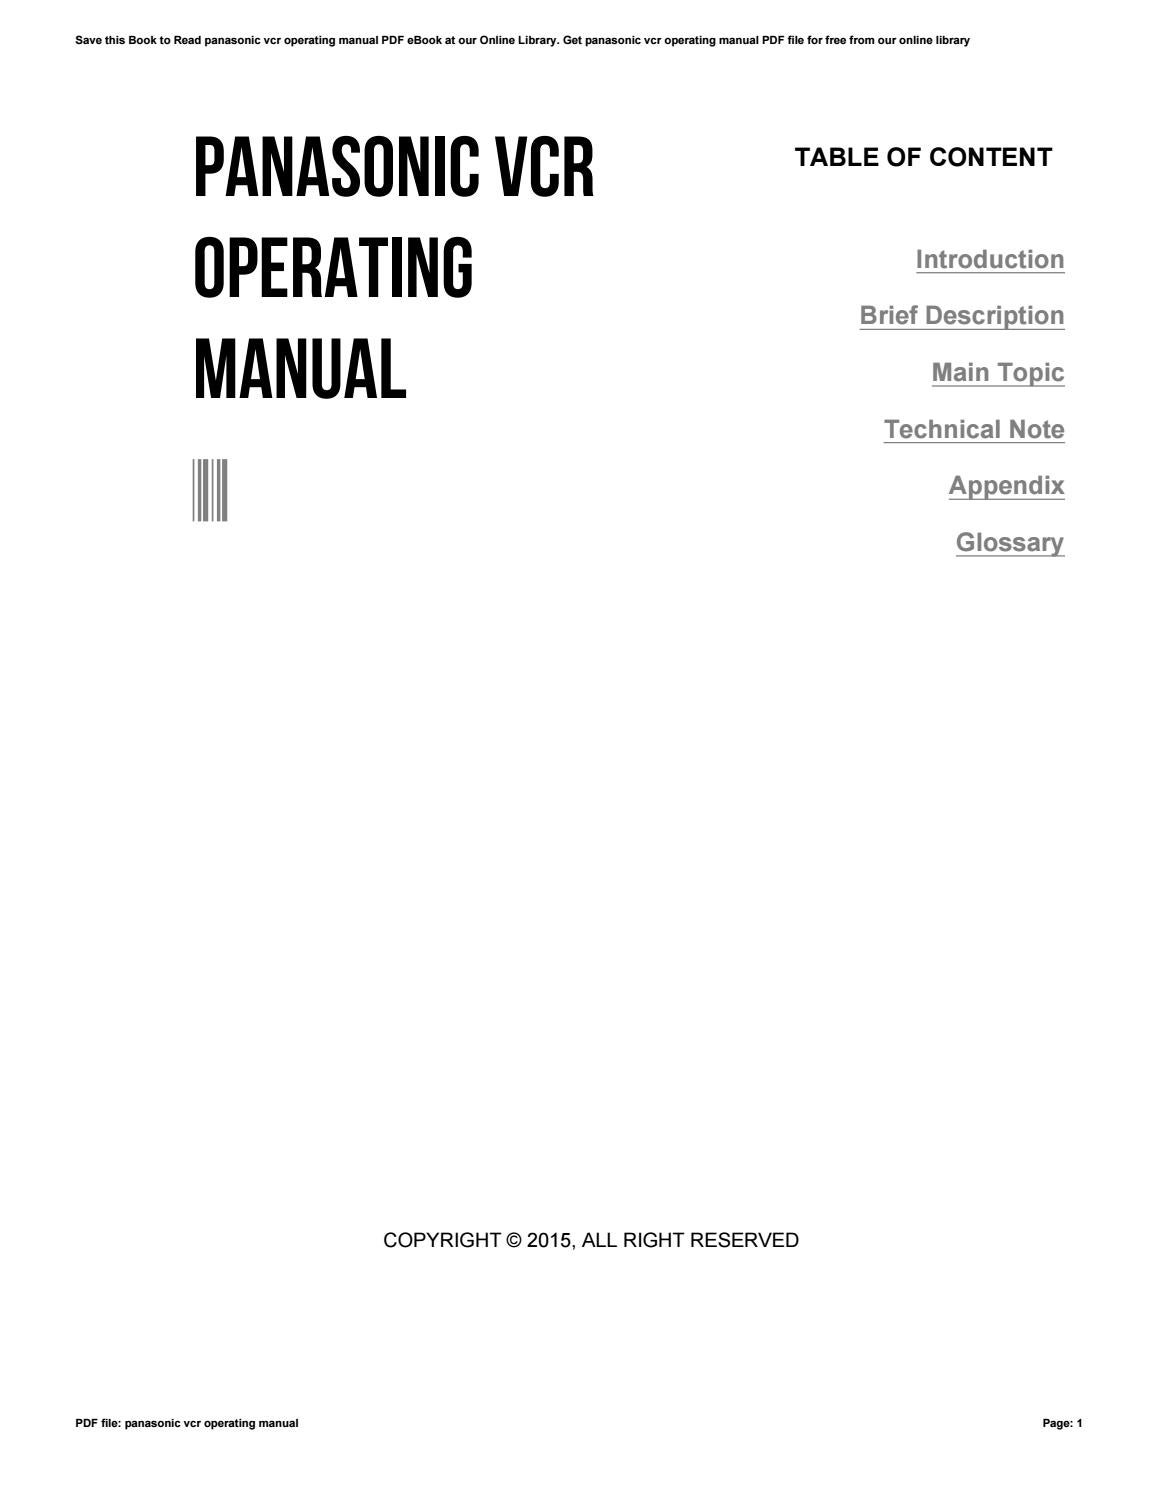 panasonic vcr user manuals ebook